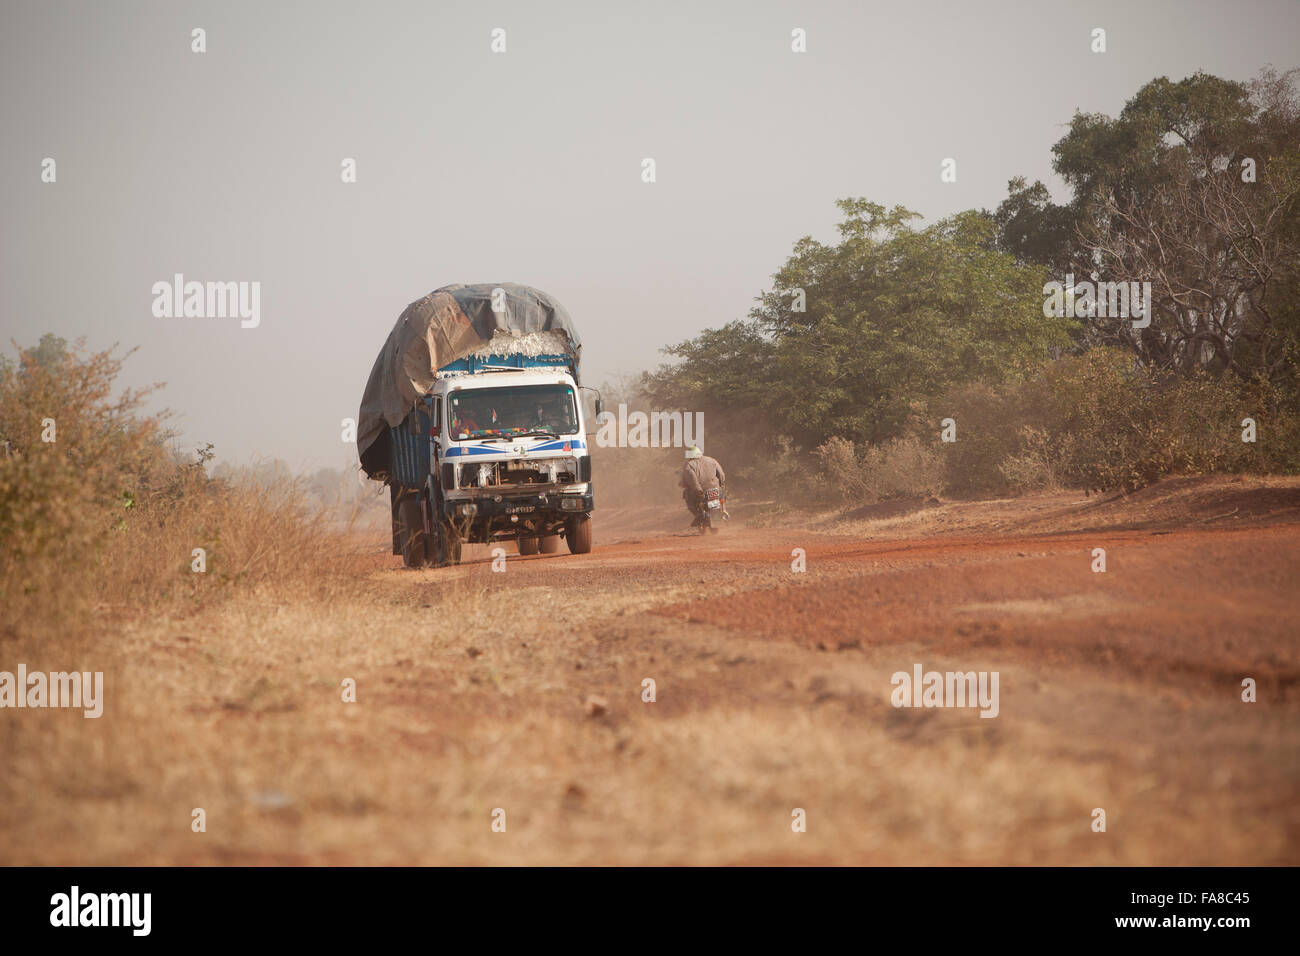 An overloaded truck travels down a dusty road in Kouka Department, Burkina Faso. - Stock Image